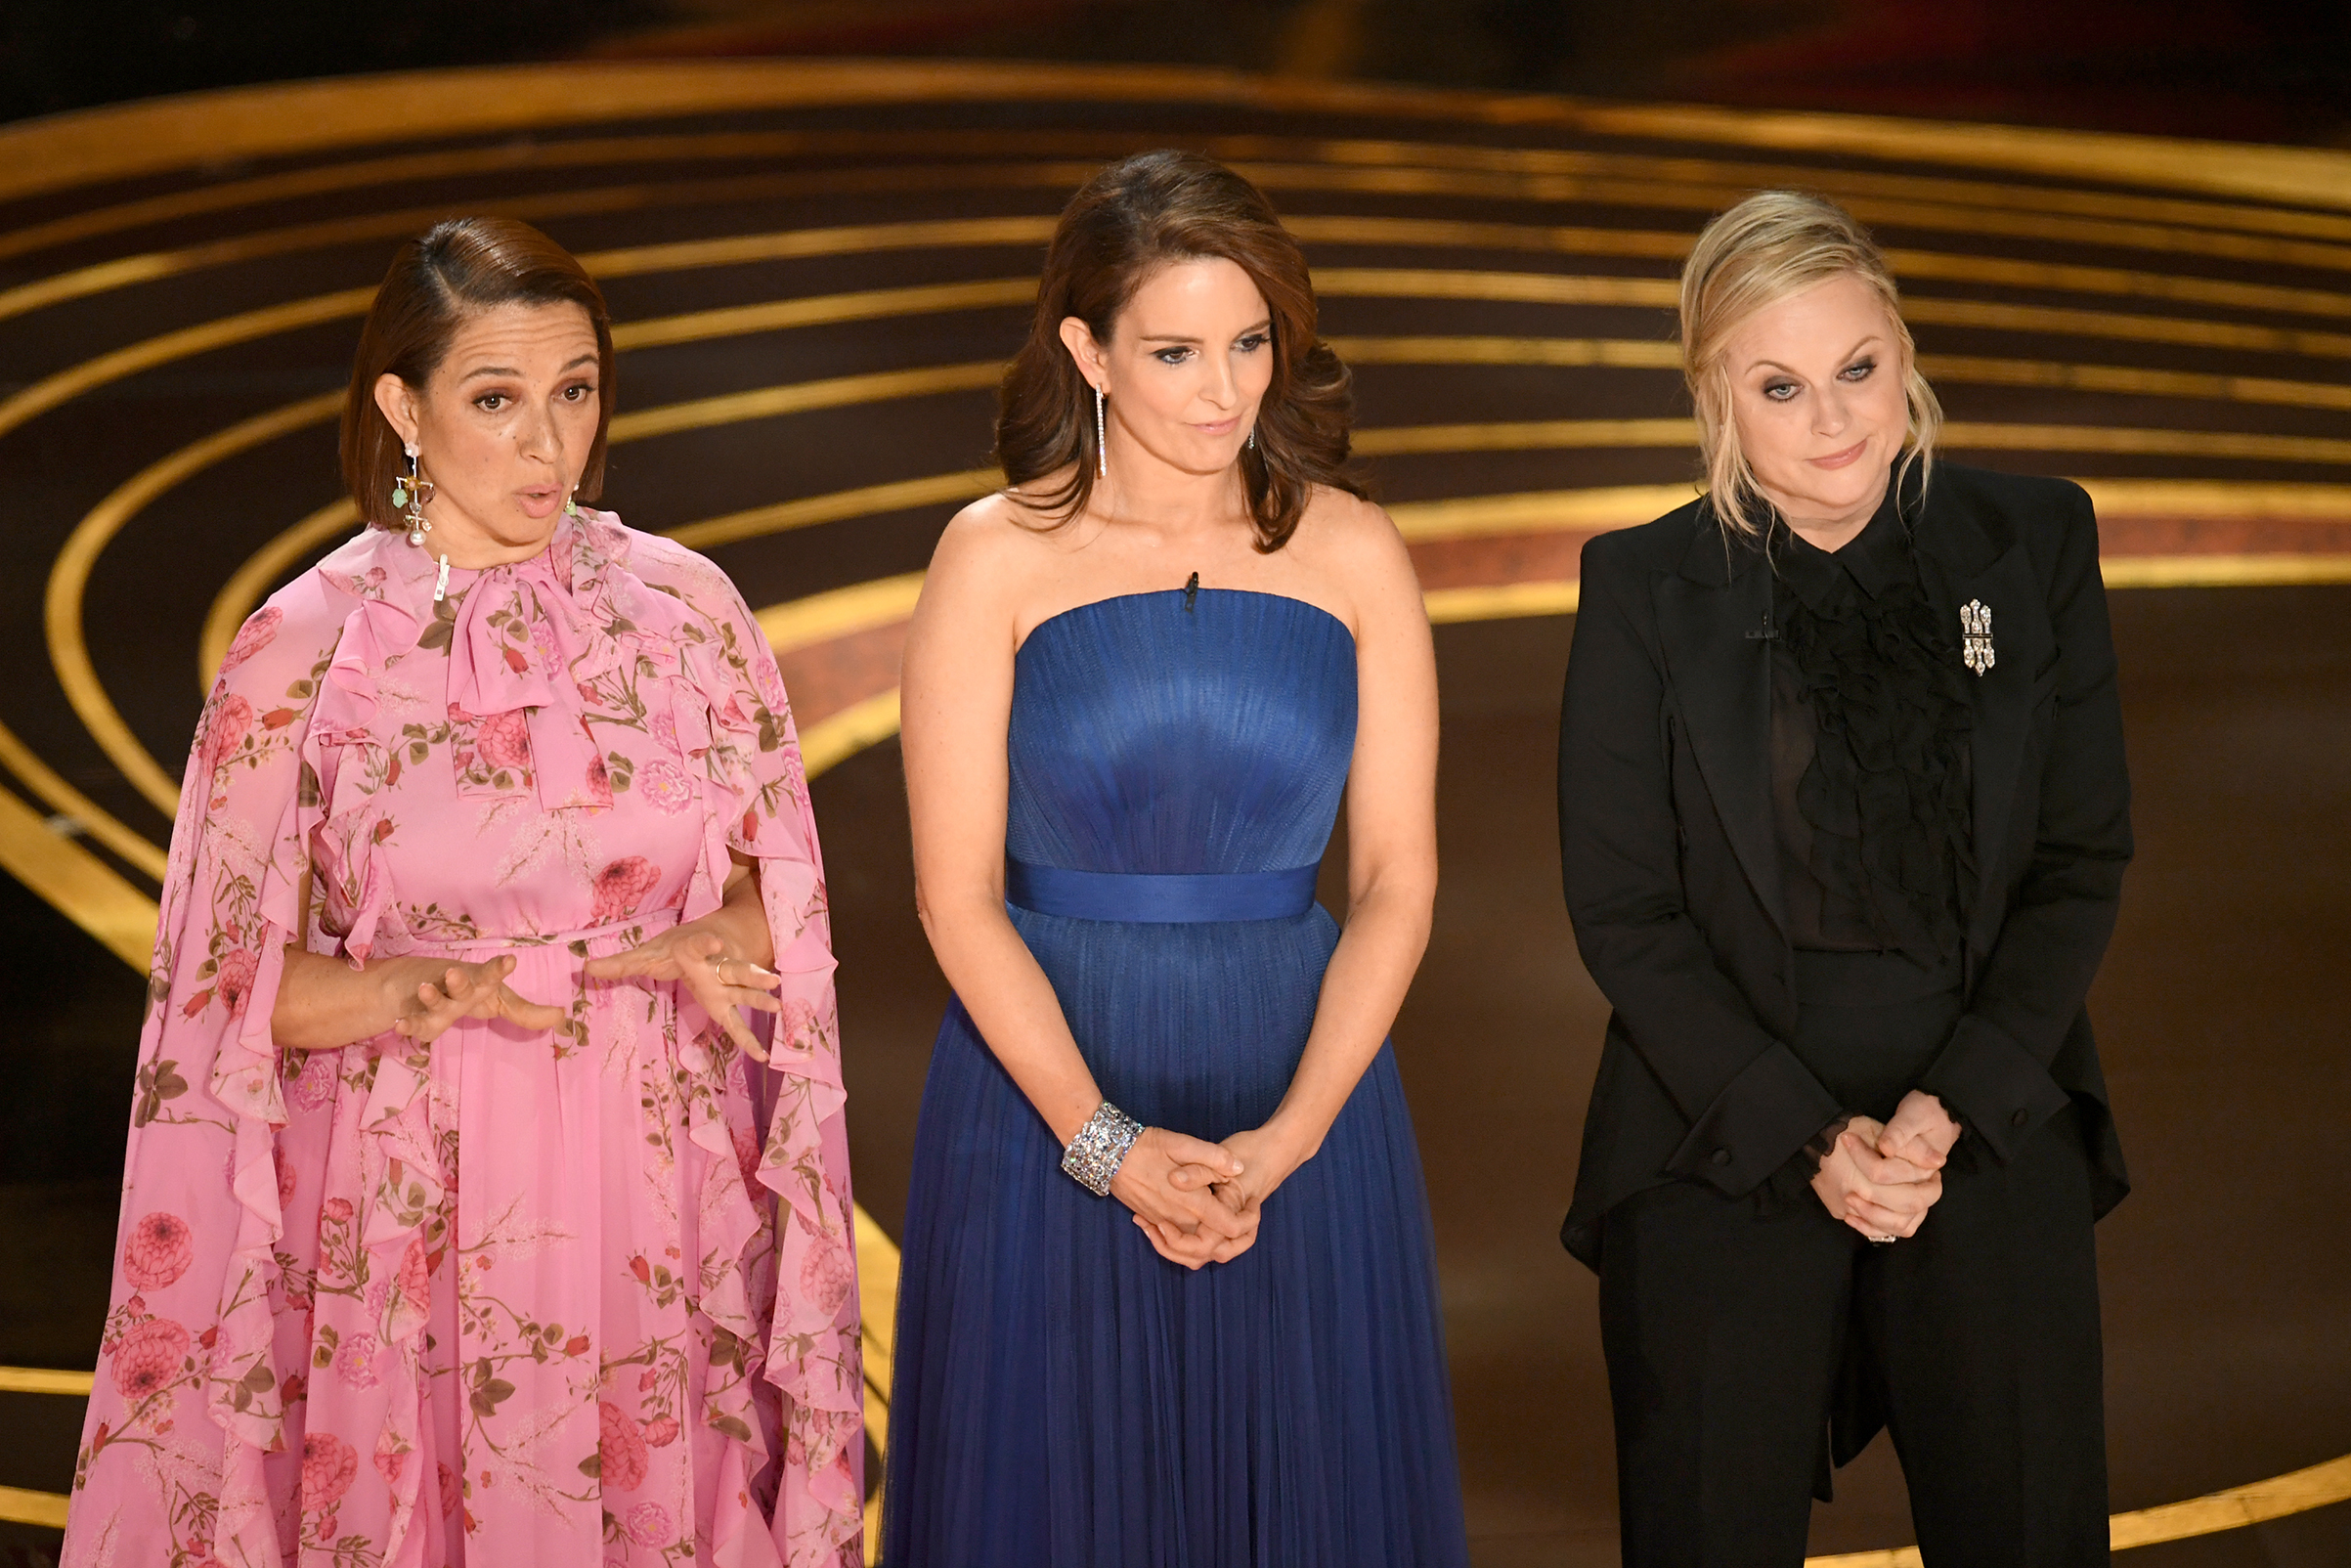 Maya Rudolph, Tina Fey, and Amy Poehler speak onstage during the 91st Annual Academy Awards at Dolby Theatre on Feb. 24, 2019.